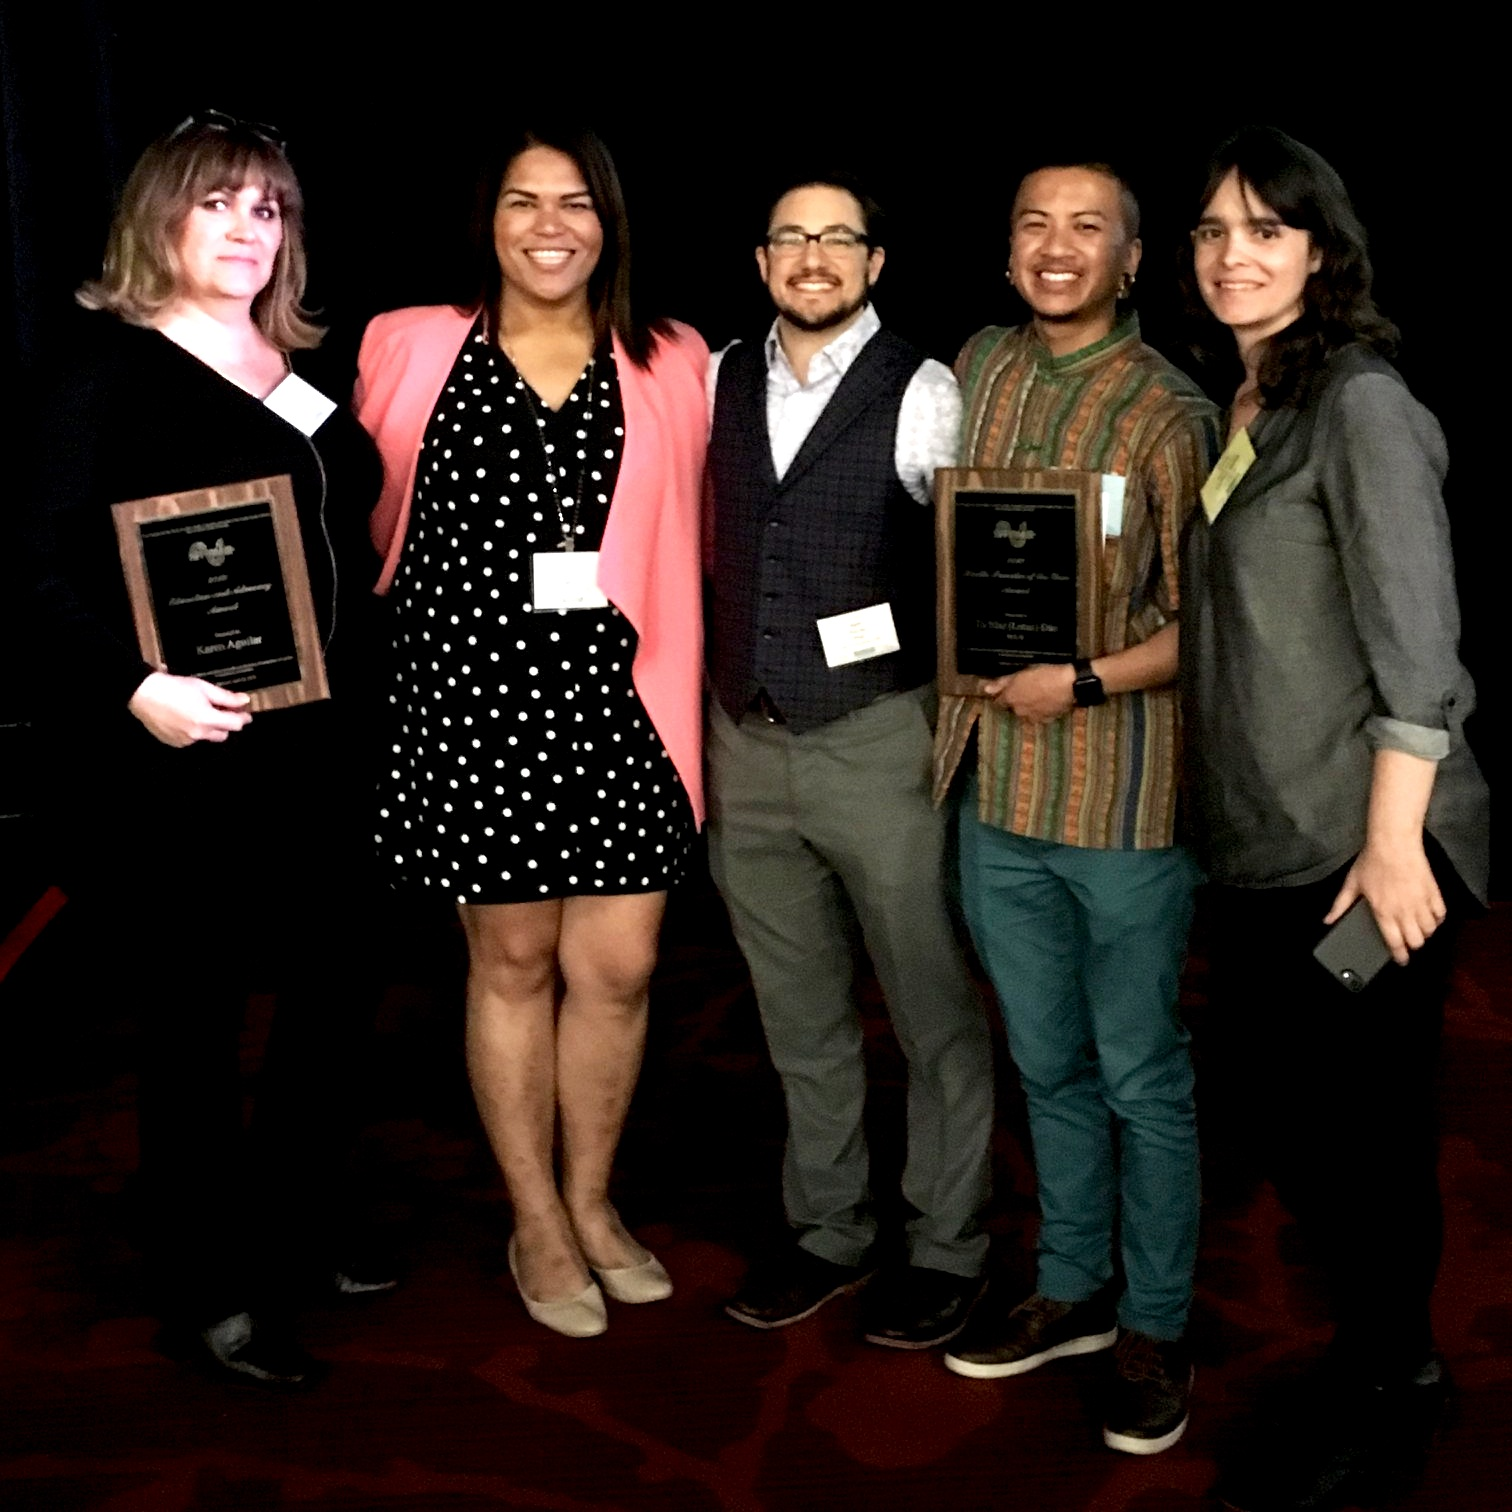 AFFIRM Advocate and Provider Award Ceremony 2019, Trans Health Summit in SF. The whole team gathered after the ceremony: Karen Aguilar, Jenna, Seth, Tố, and Kelly (left to right).